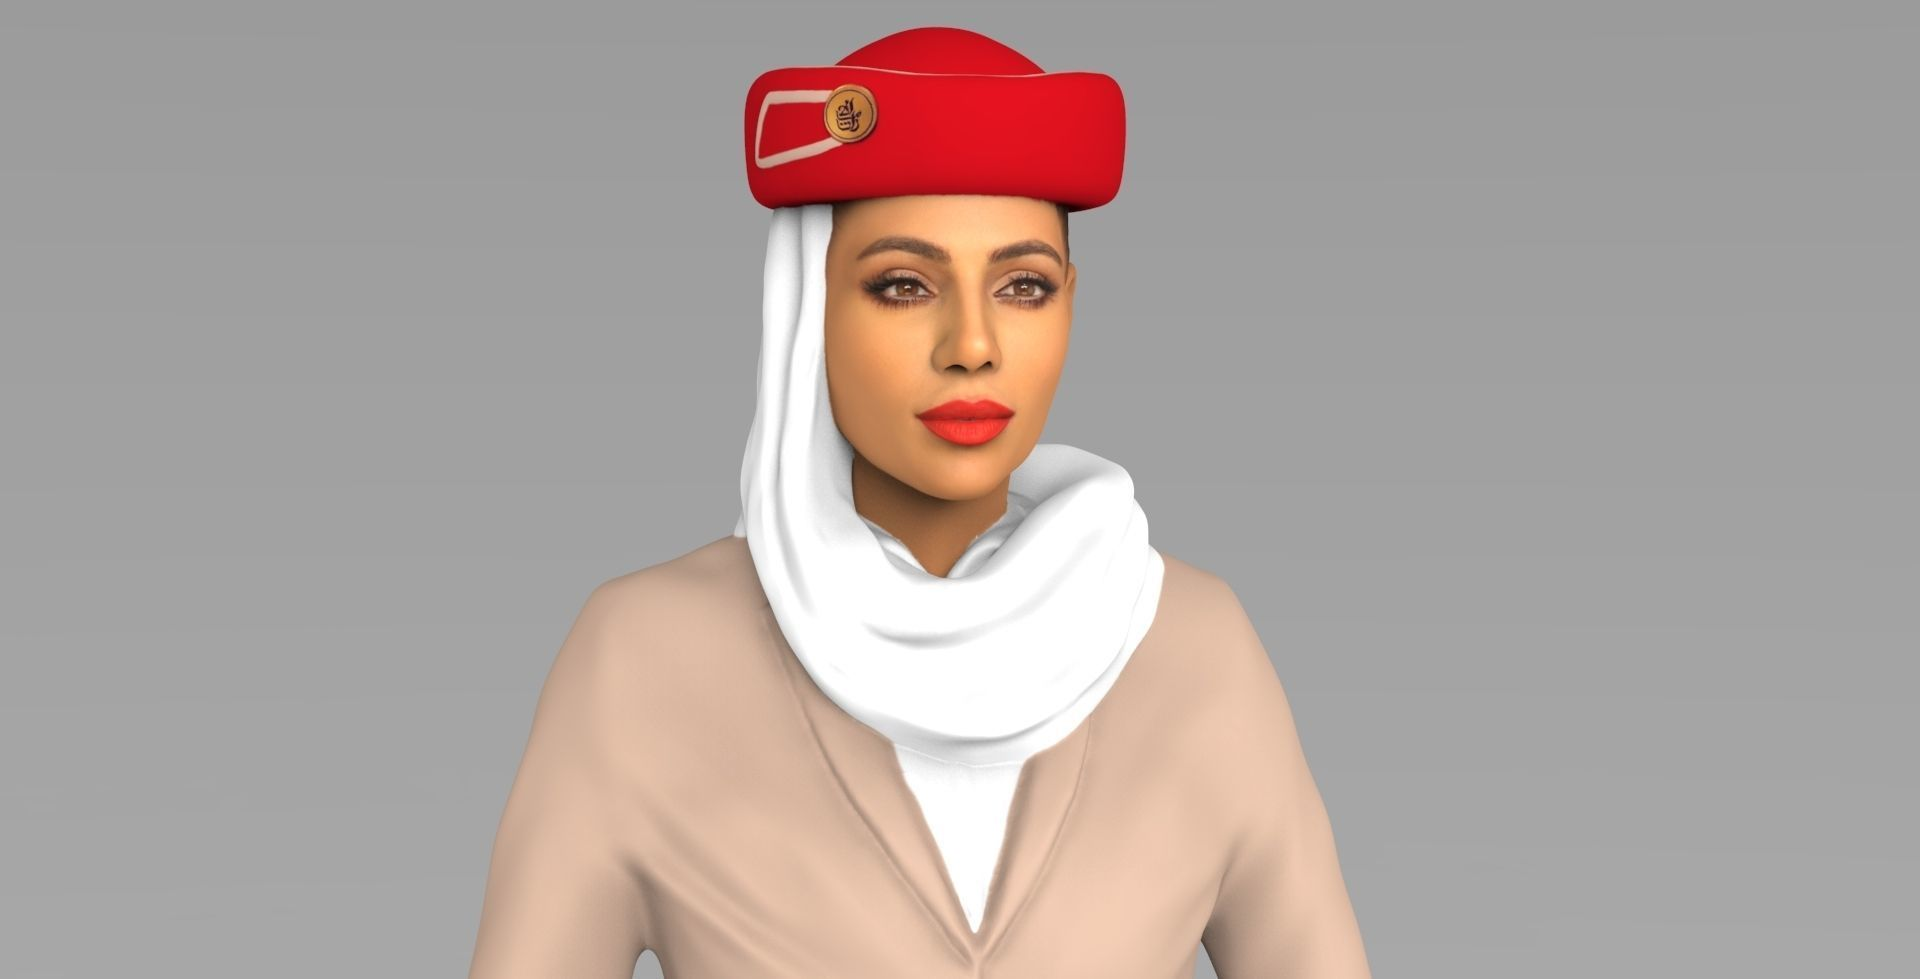 Emirates Airline Stewardess Highly Realistic